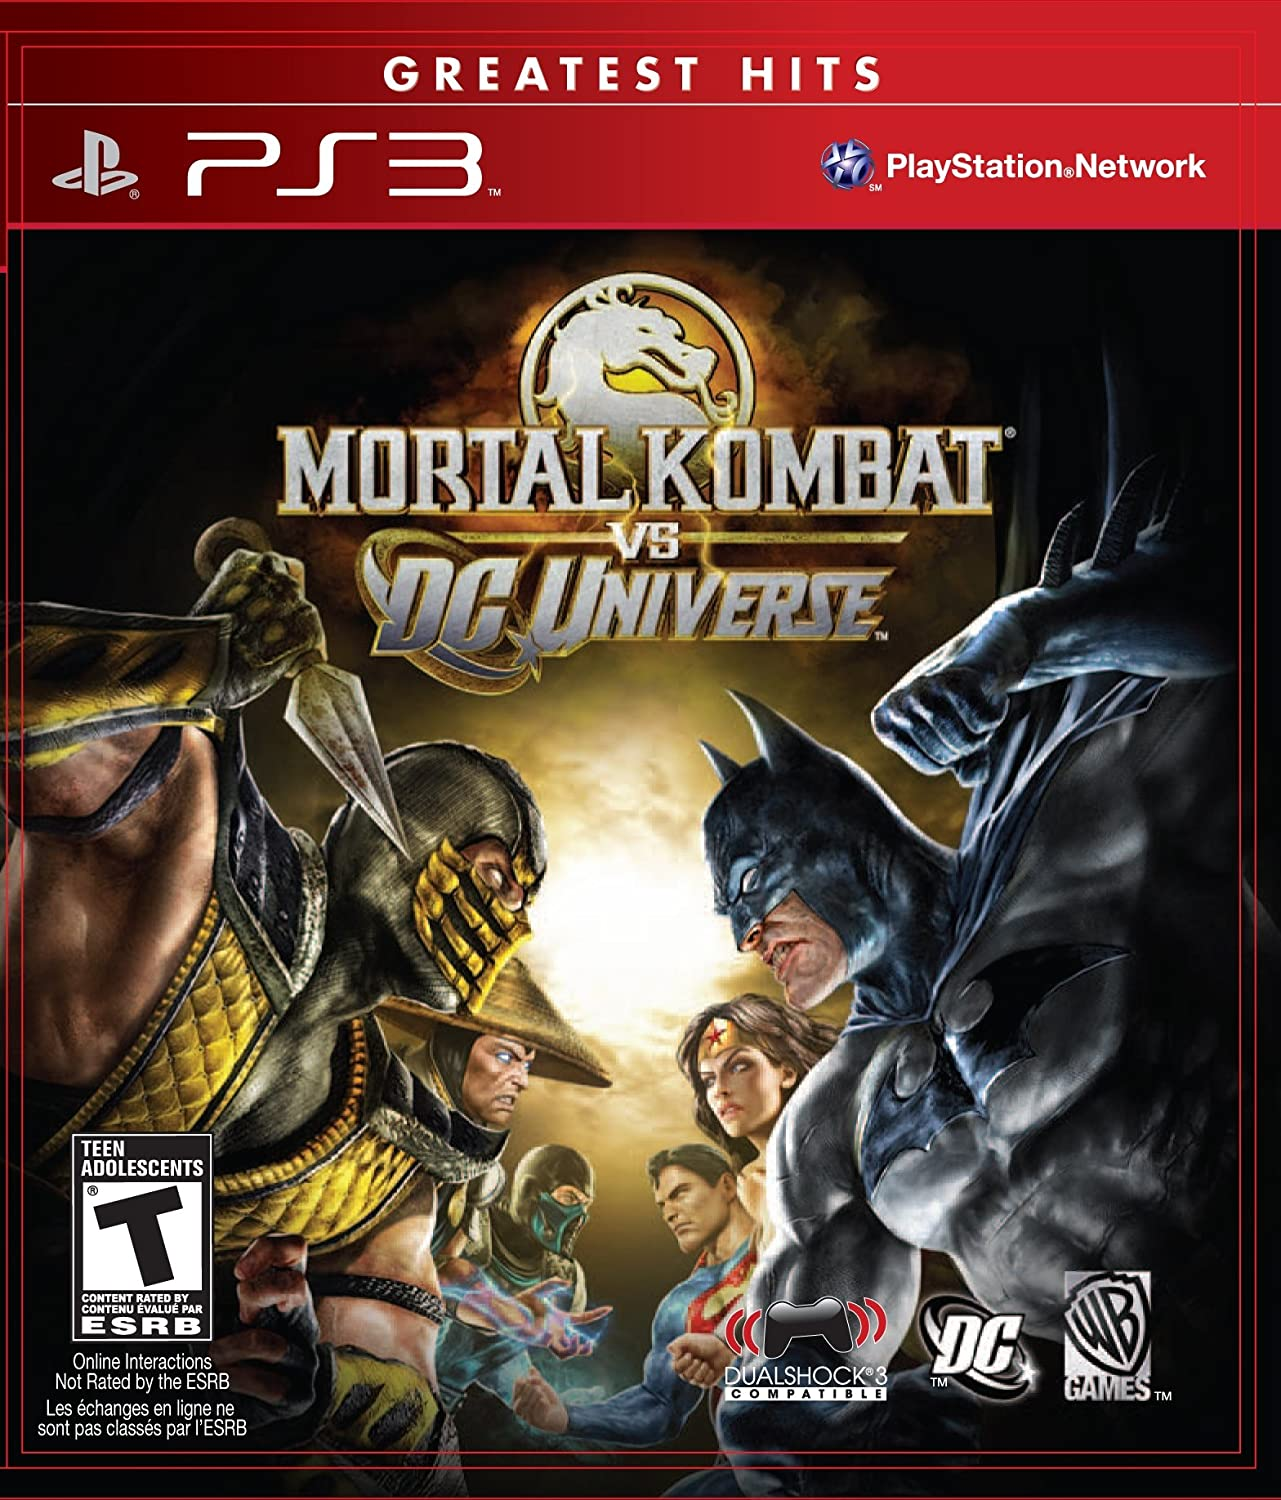 Product code mortal kombat vs dc universe - Amazon Com Mortal Kombat Vs Dc Universe Playstation 3 Artist Not Provided Video Games